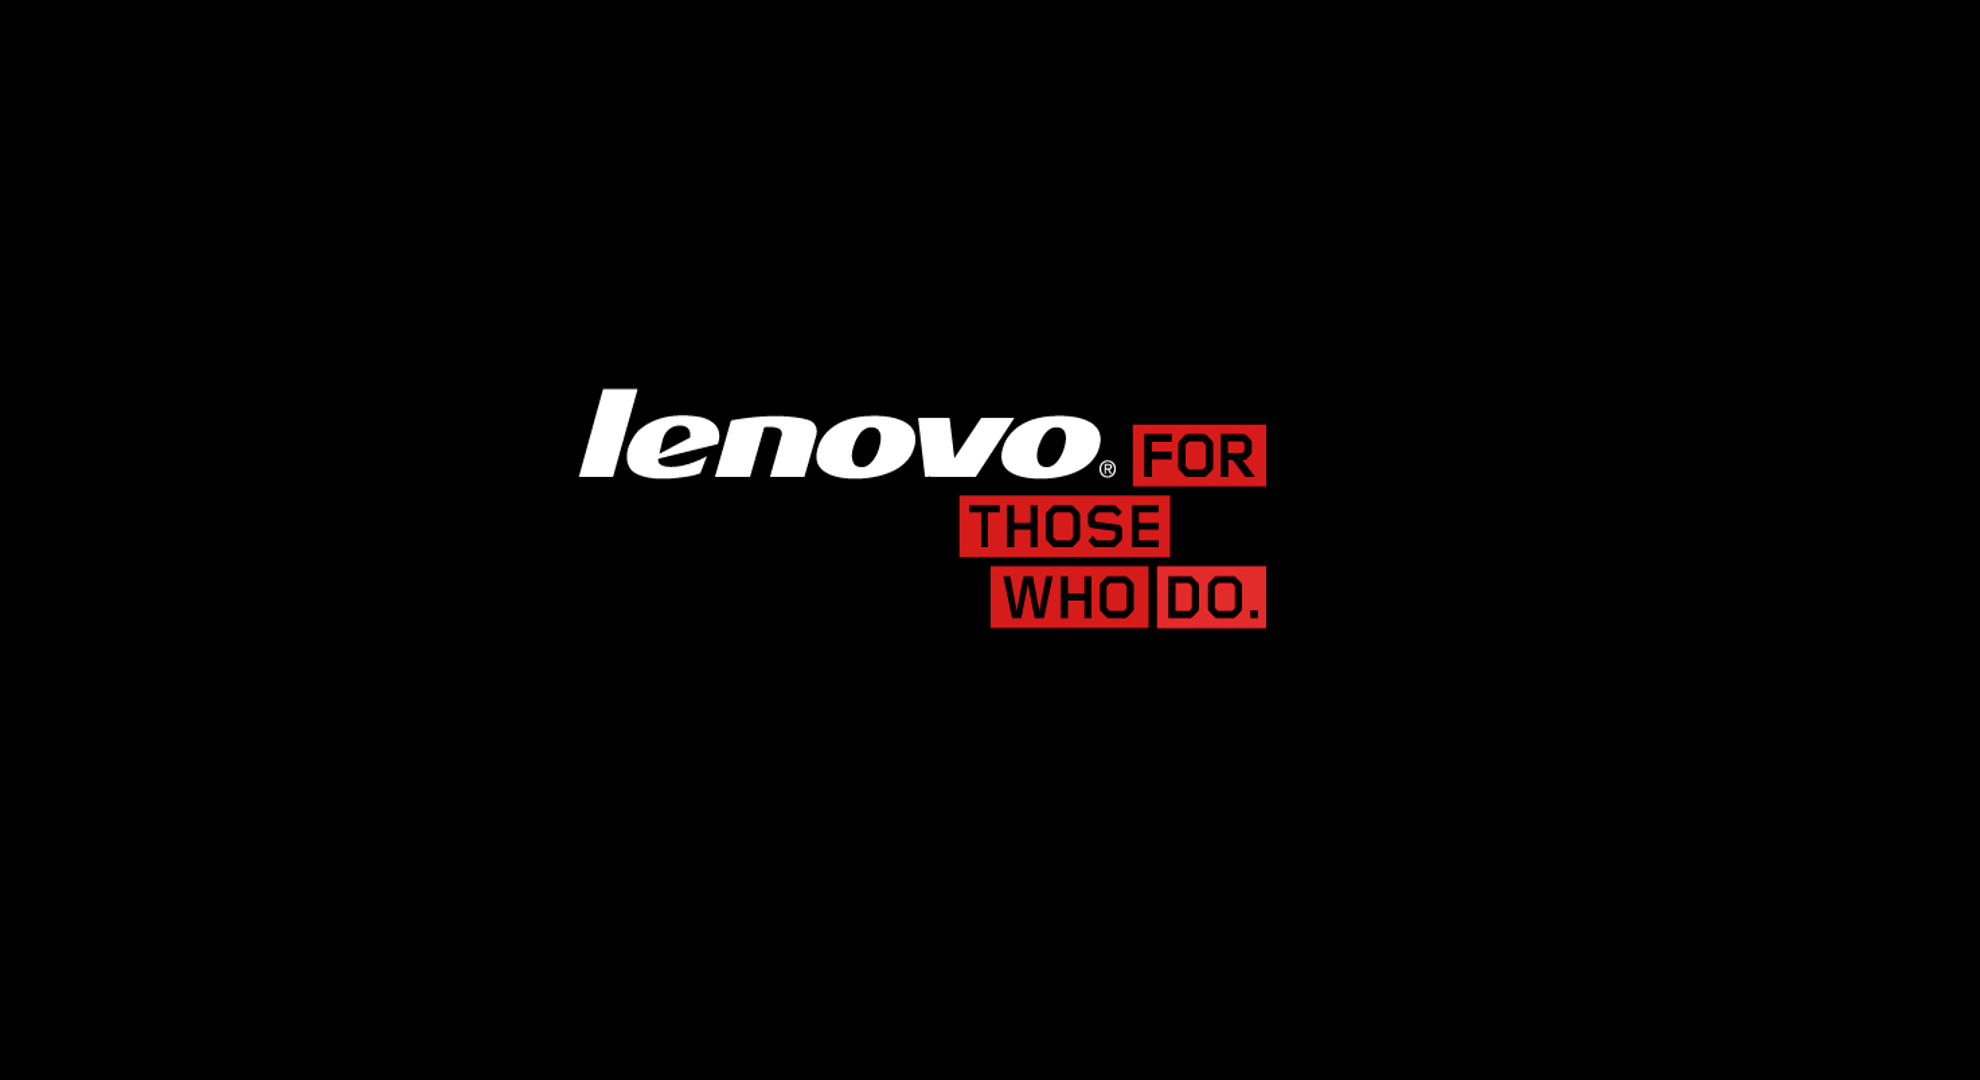 lenovo wallpapers hd,text,black,font,red,logo